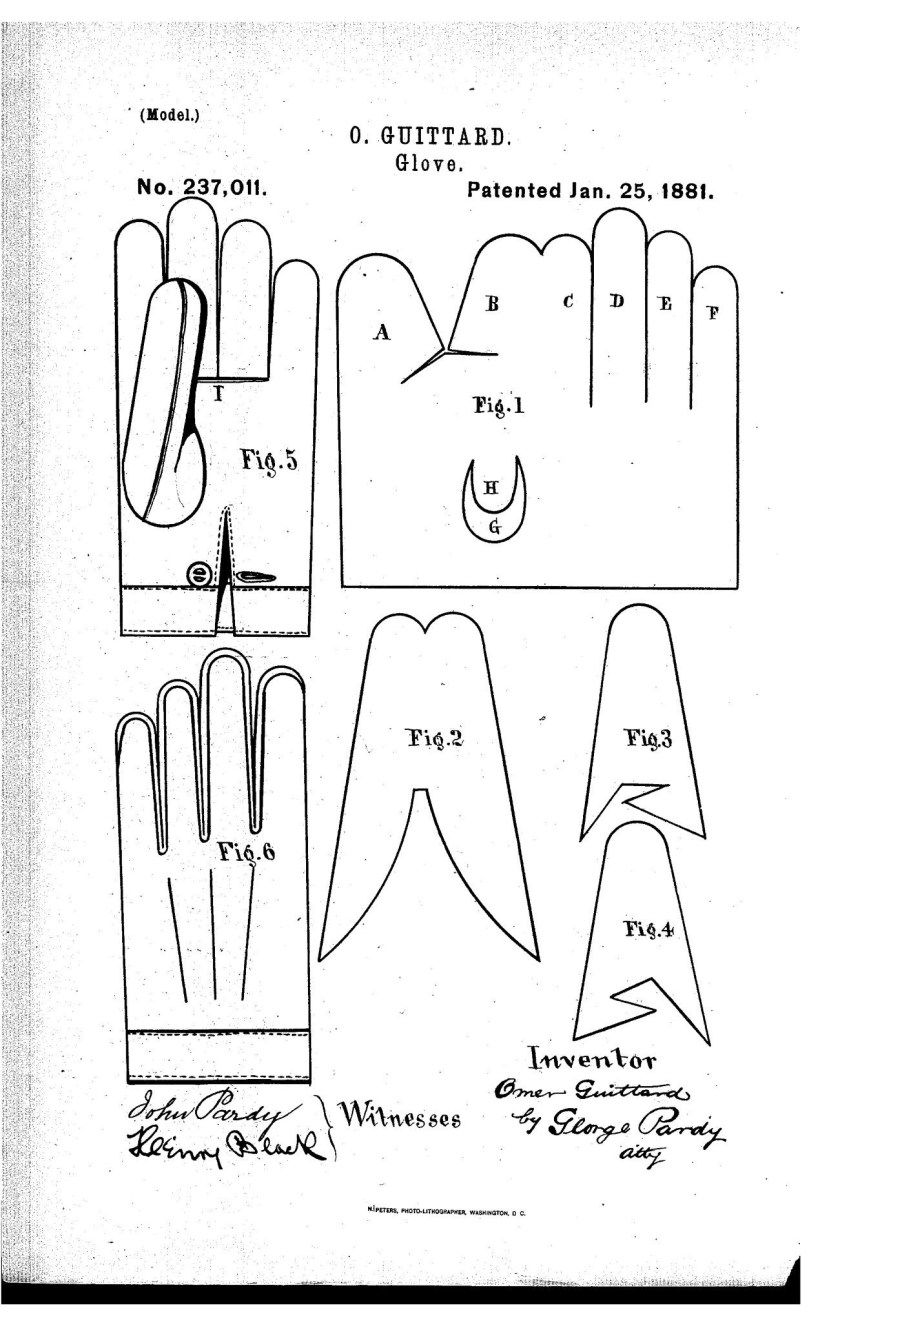 Gloves Sewing Pattern : gloves, sewing, pattern, Image, Glove, Sewing, Pattern, Figswoodfiredbistro.com, Leather, Gloves, Pattern,